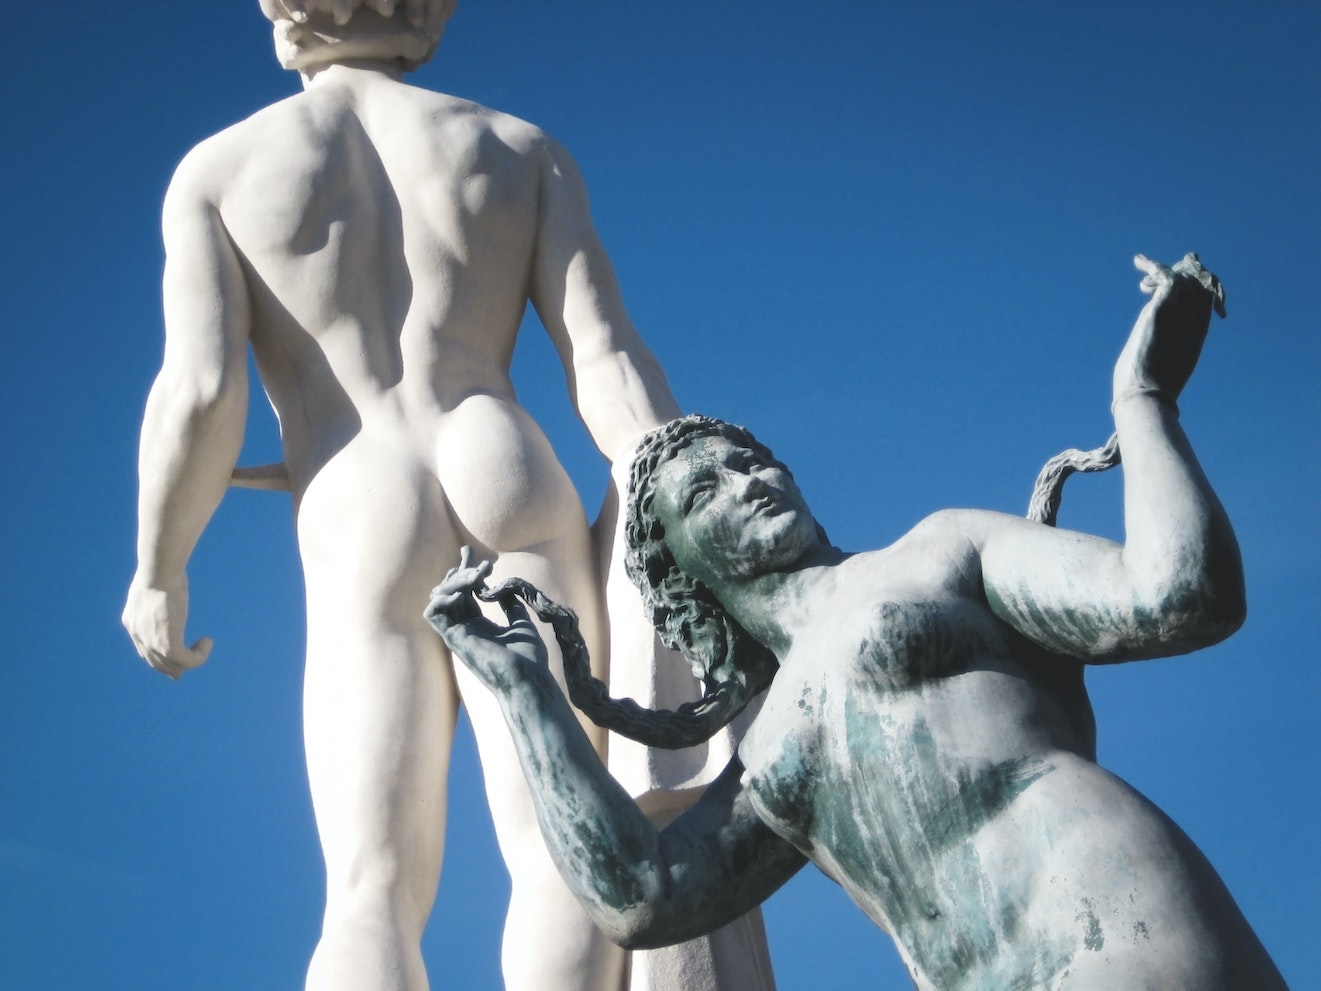 Two naked stone statues with one bum